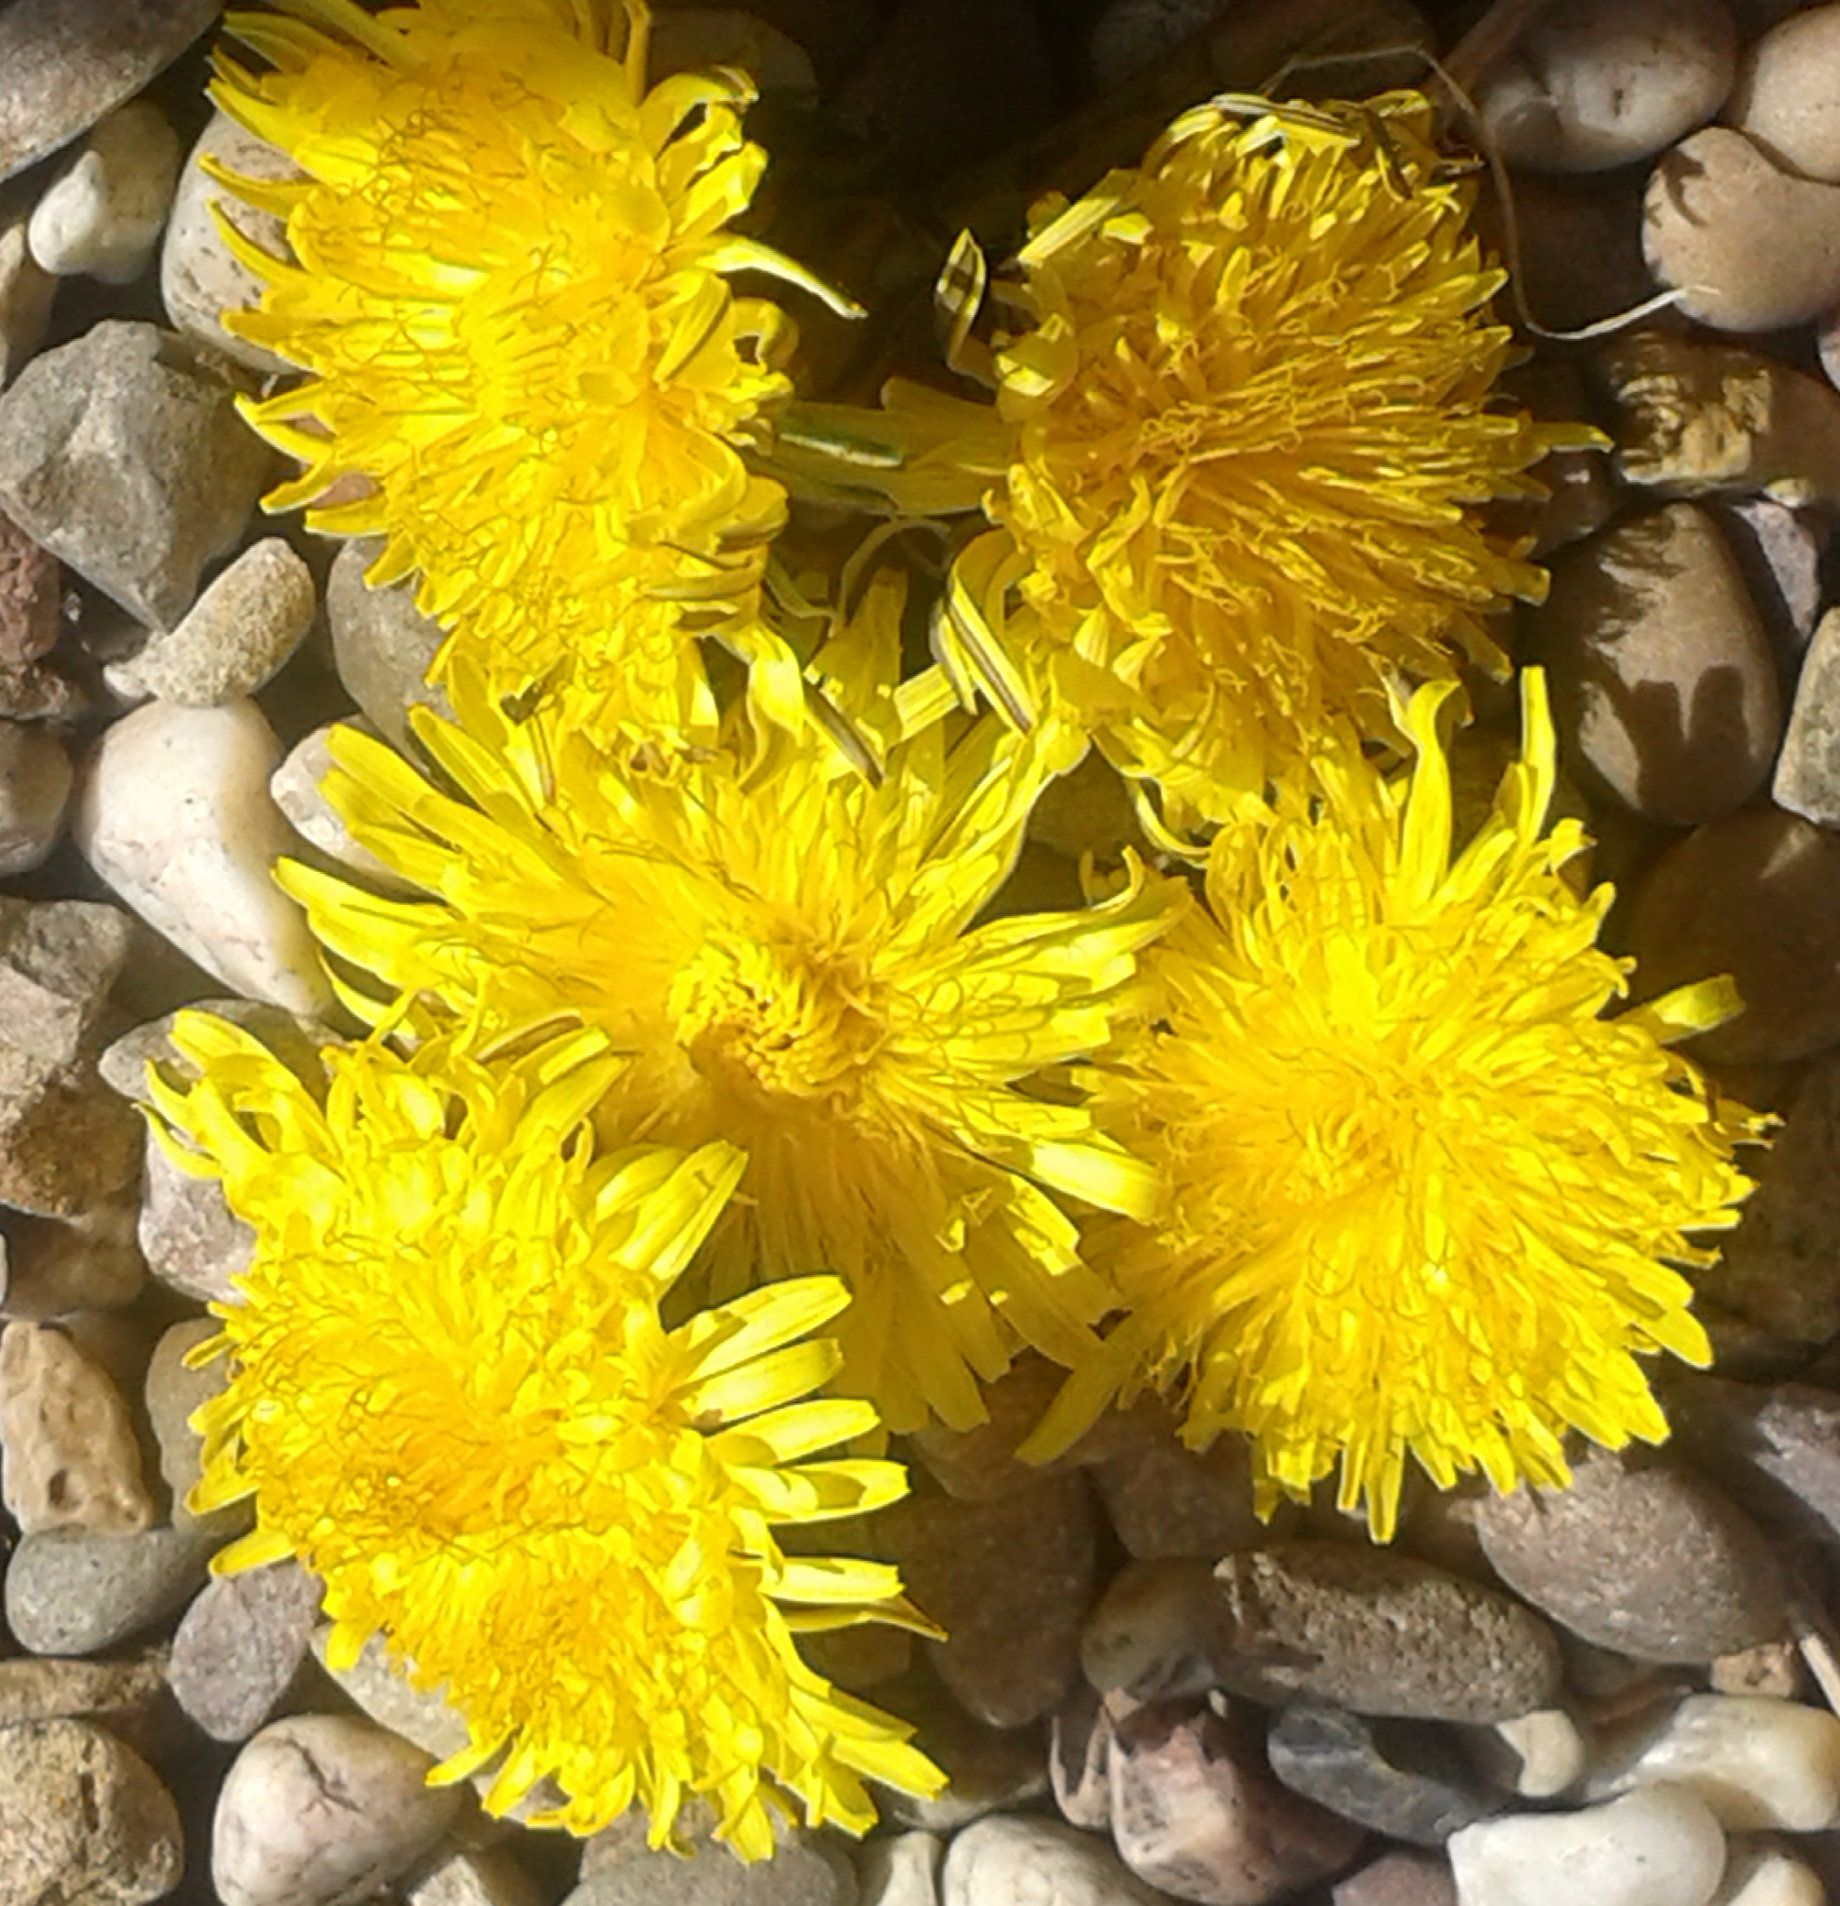 Dried Dandelion Flowers Magical Use Crafting Poppets Sachets Rituals Wiccan Pagan Shop Natural Healing Dandelion Flower